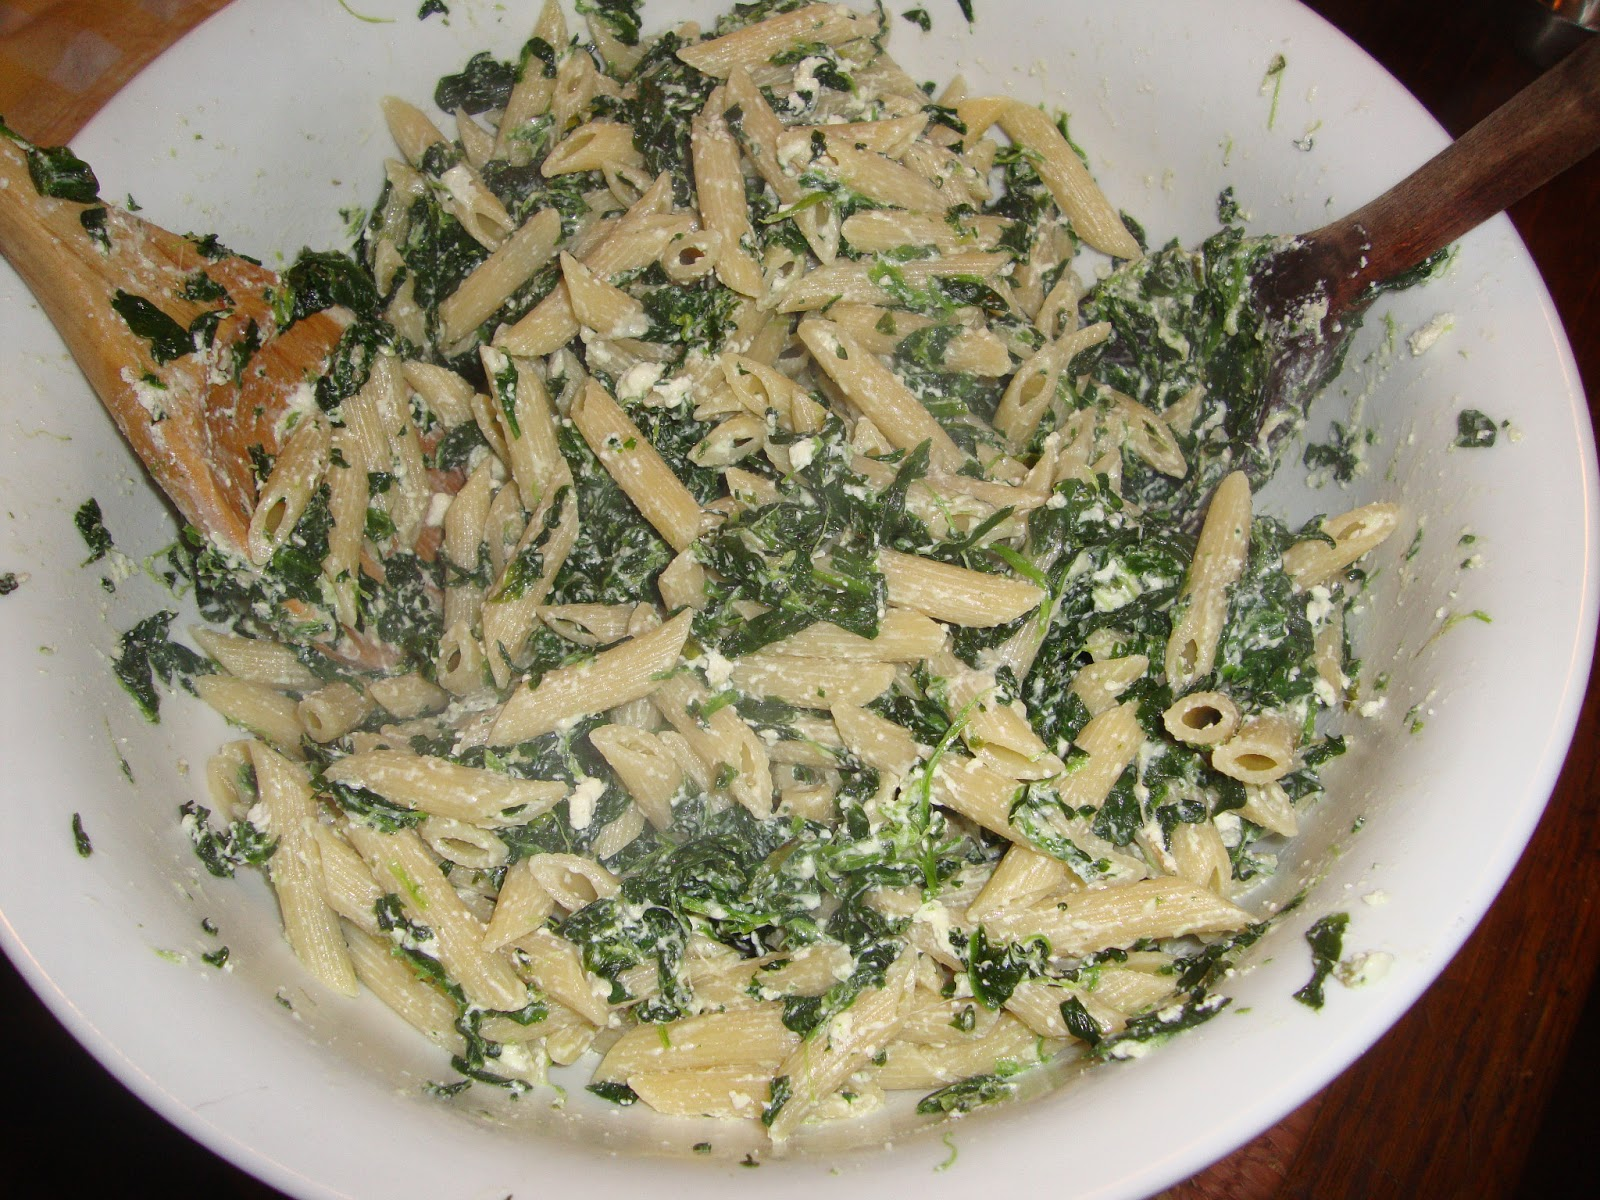 Live from Voorheesville: Penne with Ricotta and Spinach Sauce